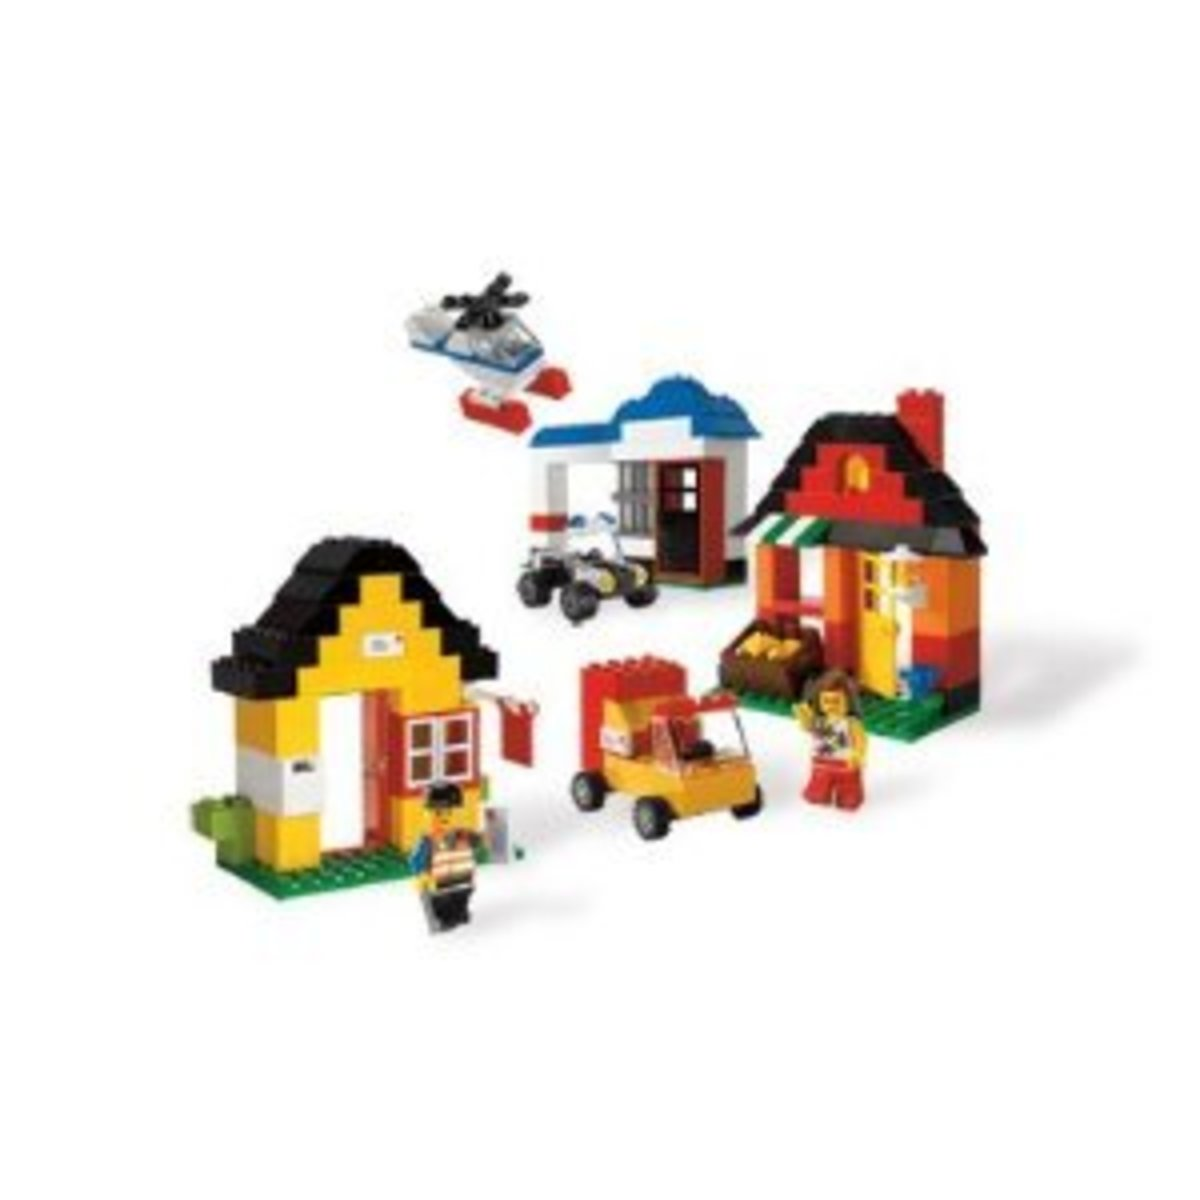 Best First Lego Sets For Young Children